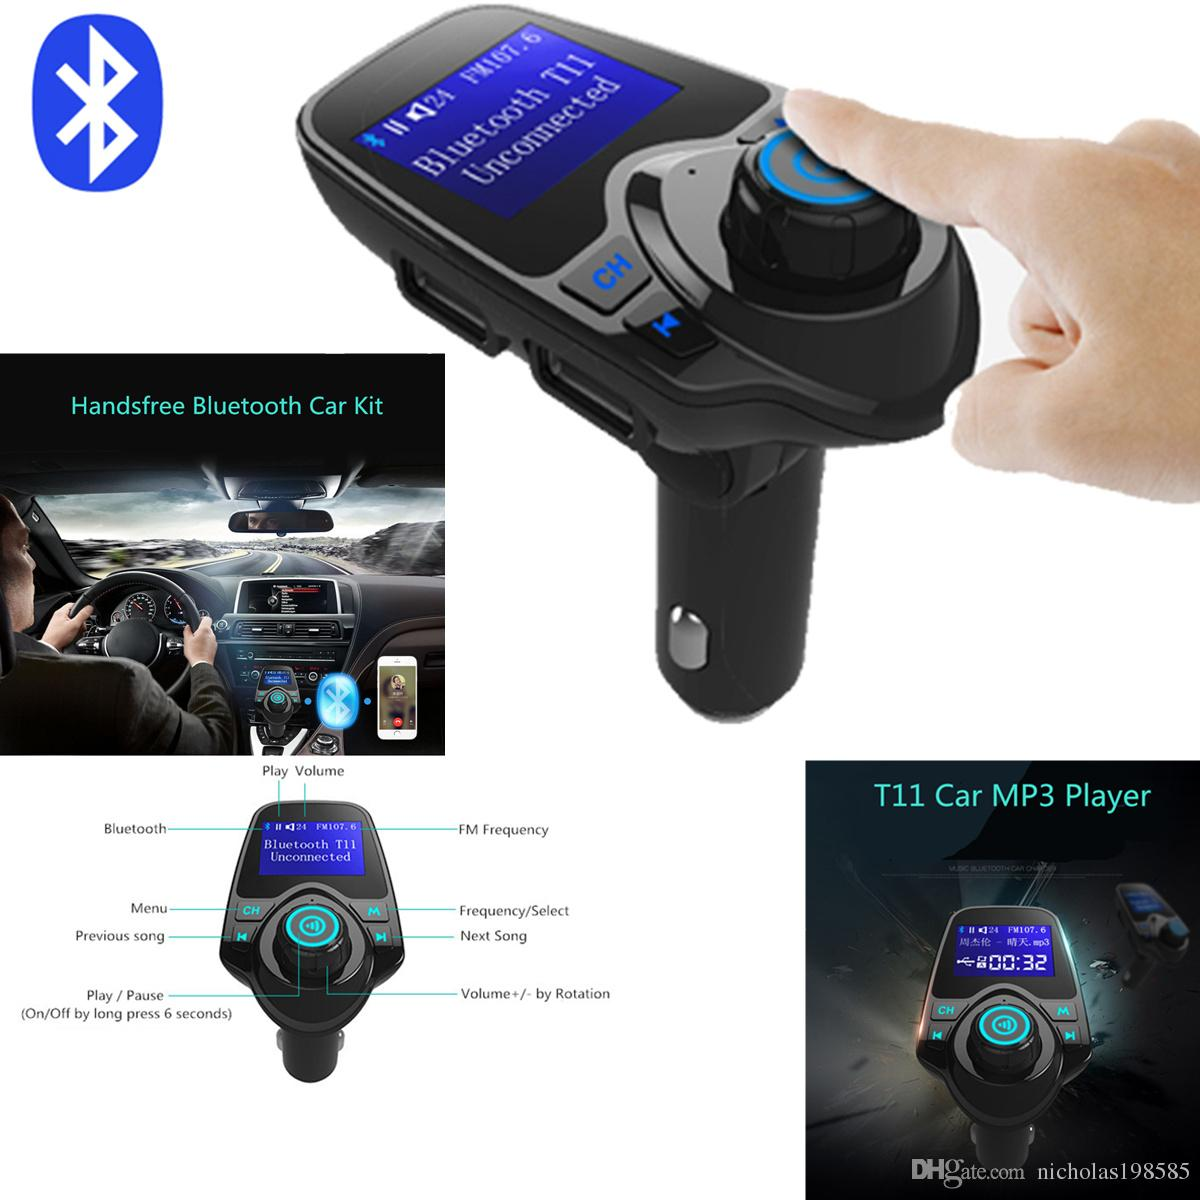 2017 t11 bluetooth hands free car kit with usb port charger and fm transmitter support tf card mp3 music player also bc06 bc09 t10 x5 g7 car kit from